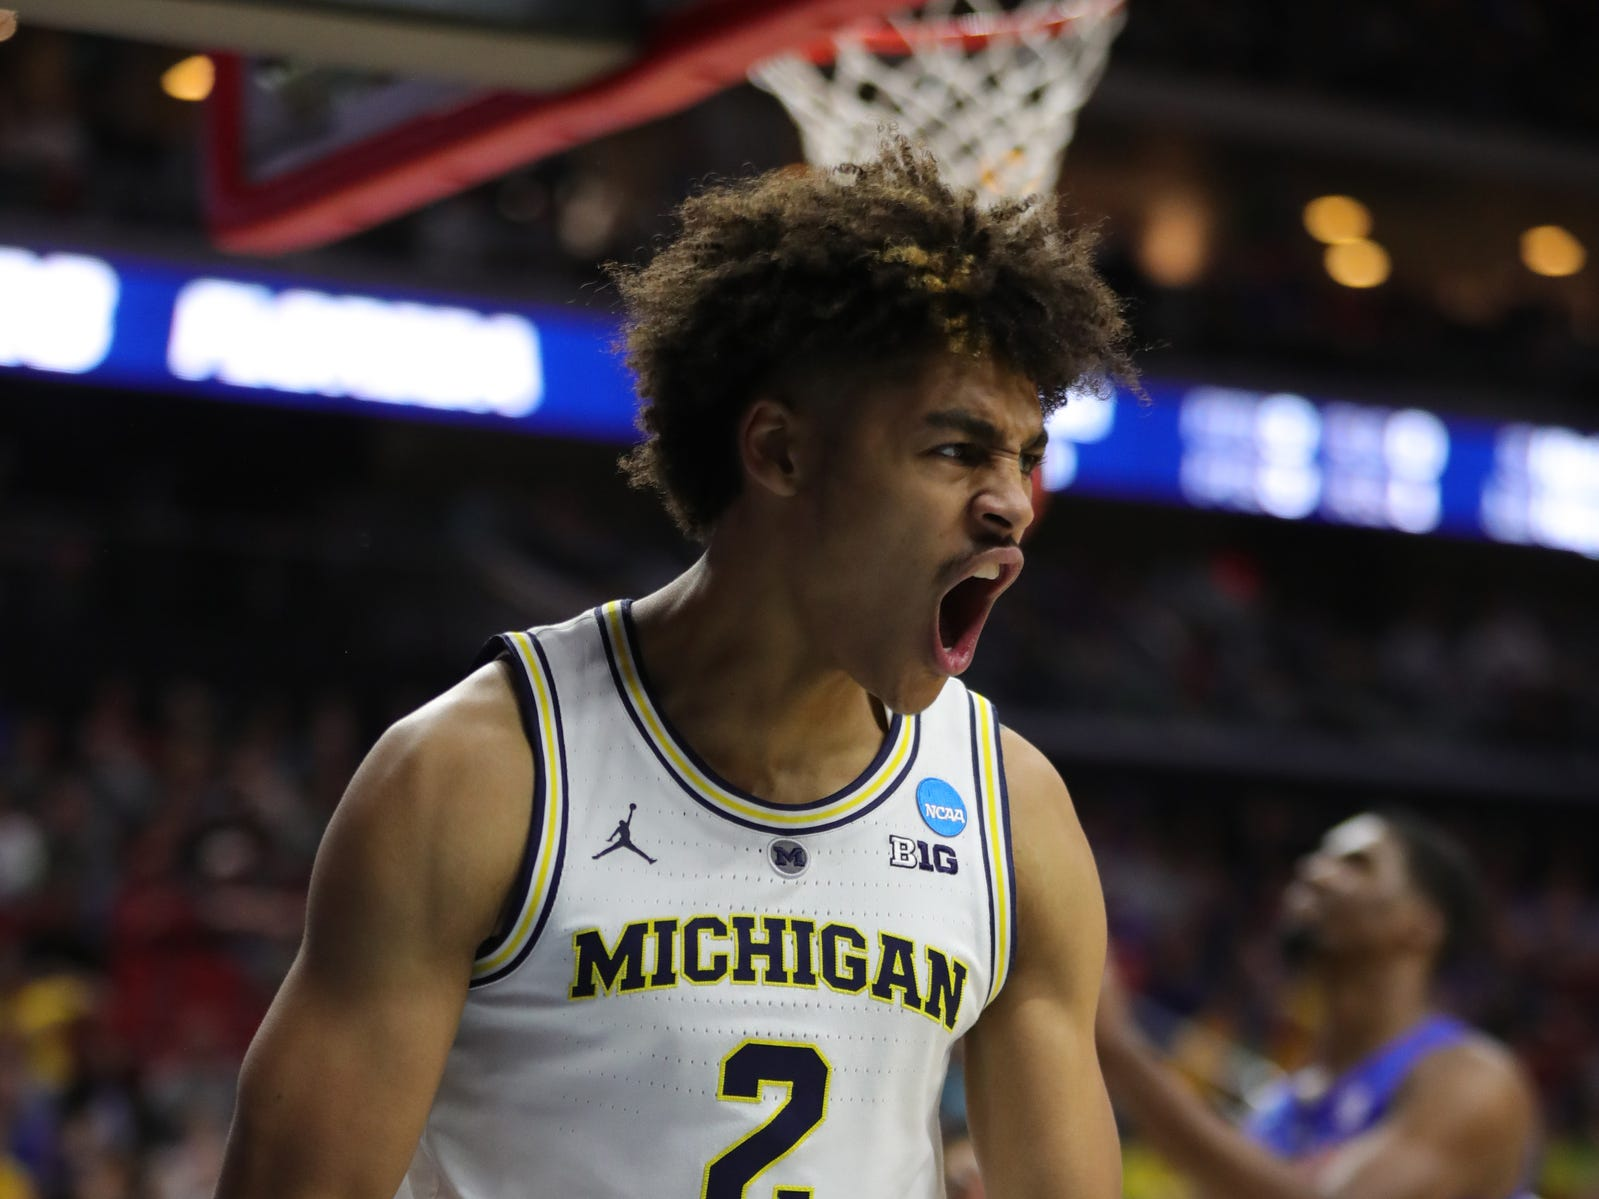 Michigan's Jordan Poole reacts after scoring against Florida during the second half of their second round NCAA tournament game Saturday, March 23, 2019 at Wells Fargo Arena in Des Moines, Iowa.